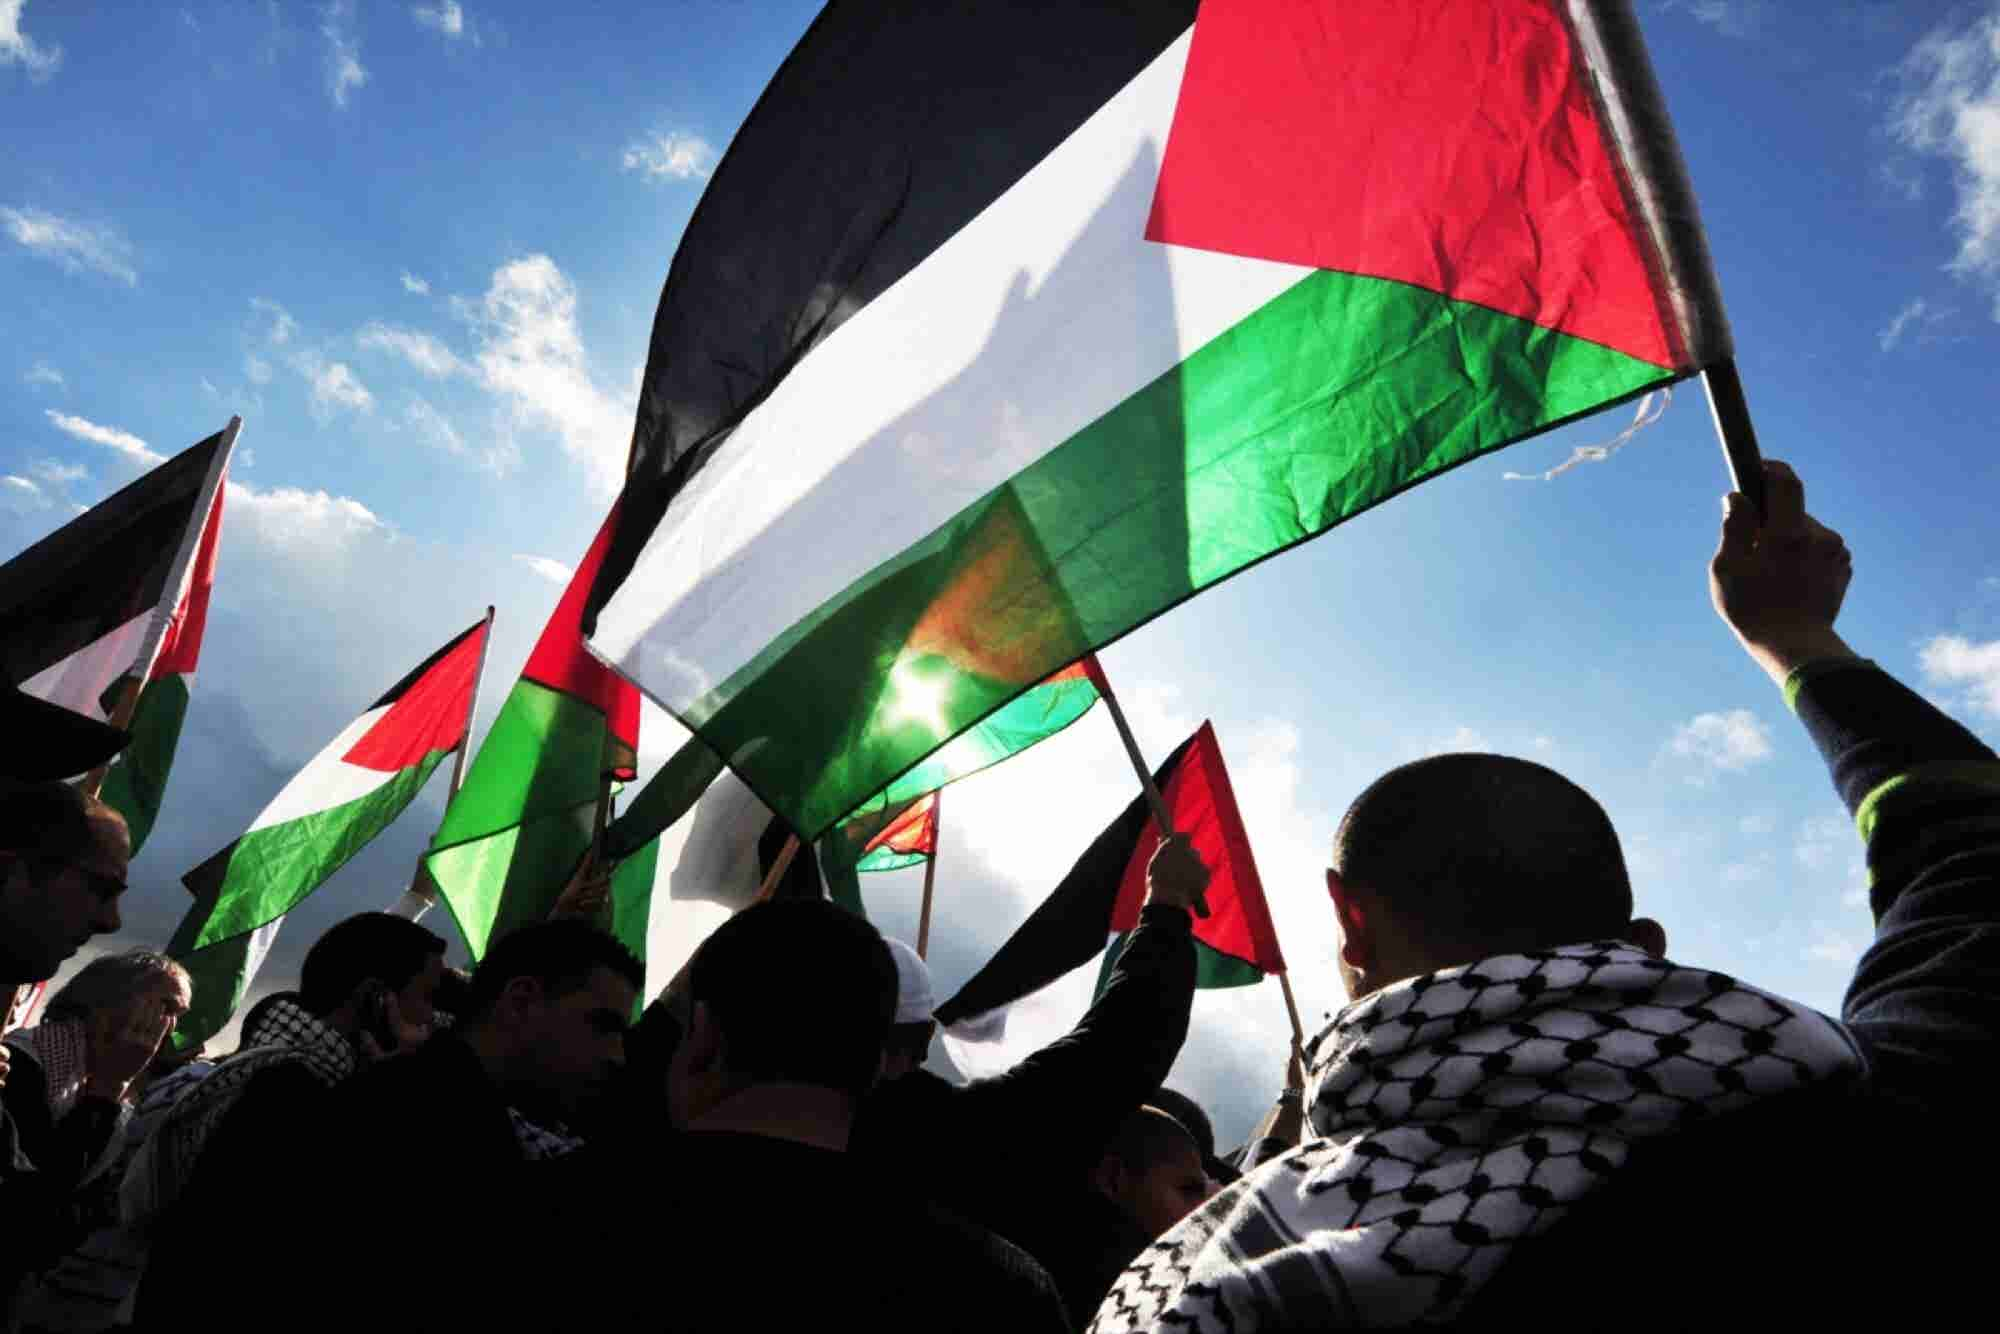 Palestine Pursues Joining The ICC